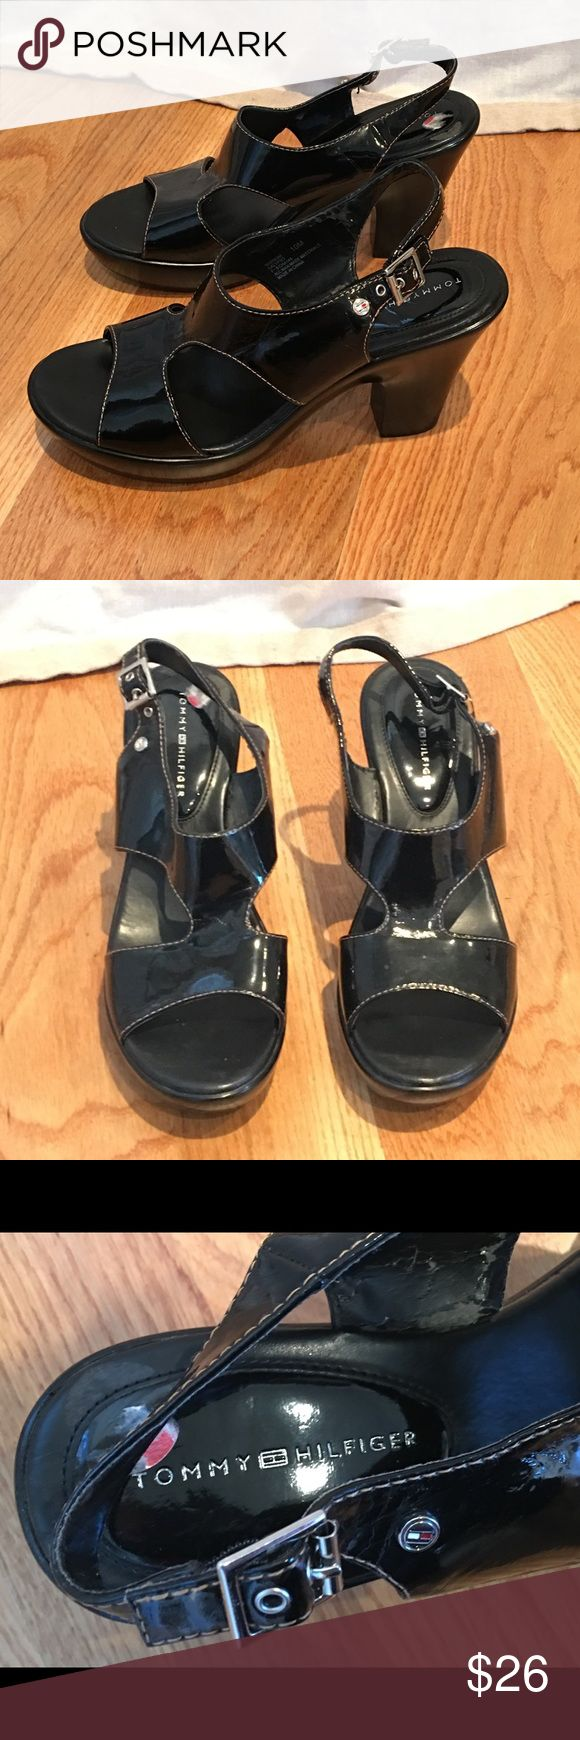 TOMMY HILFIGER Heels Great pair of black patent strappy open toe heels. Some scuffs and wear on heels and on inside of shoe...please see all photos! Tommy Hilfiger Shoes Heels